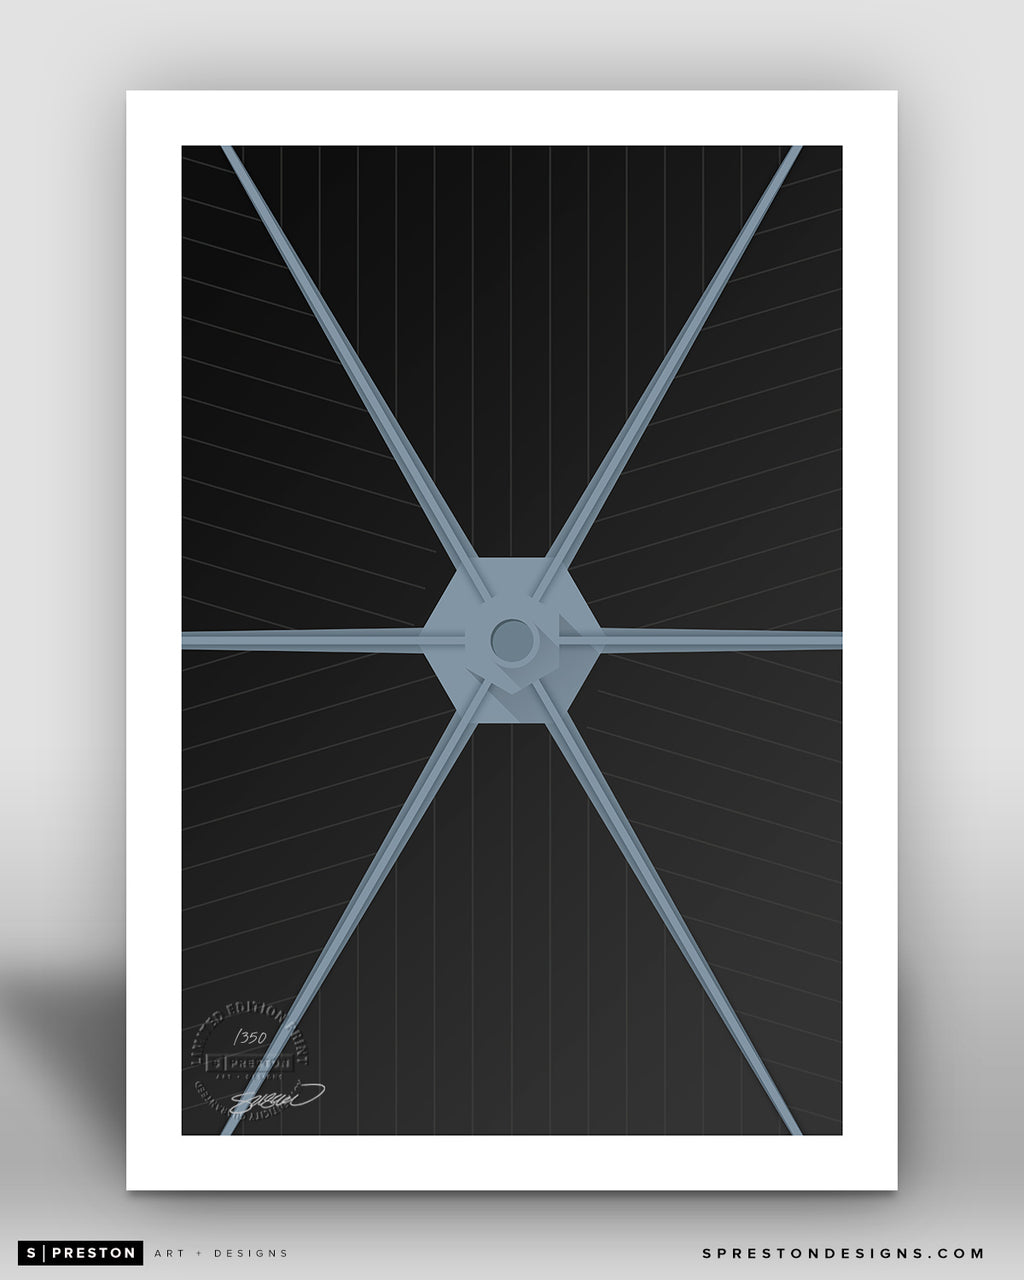 Minimalist Movies - Tie Fighter - Star Wars - S. Preston